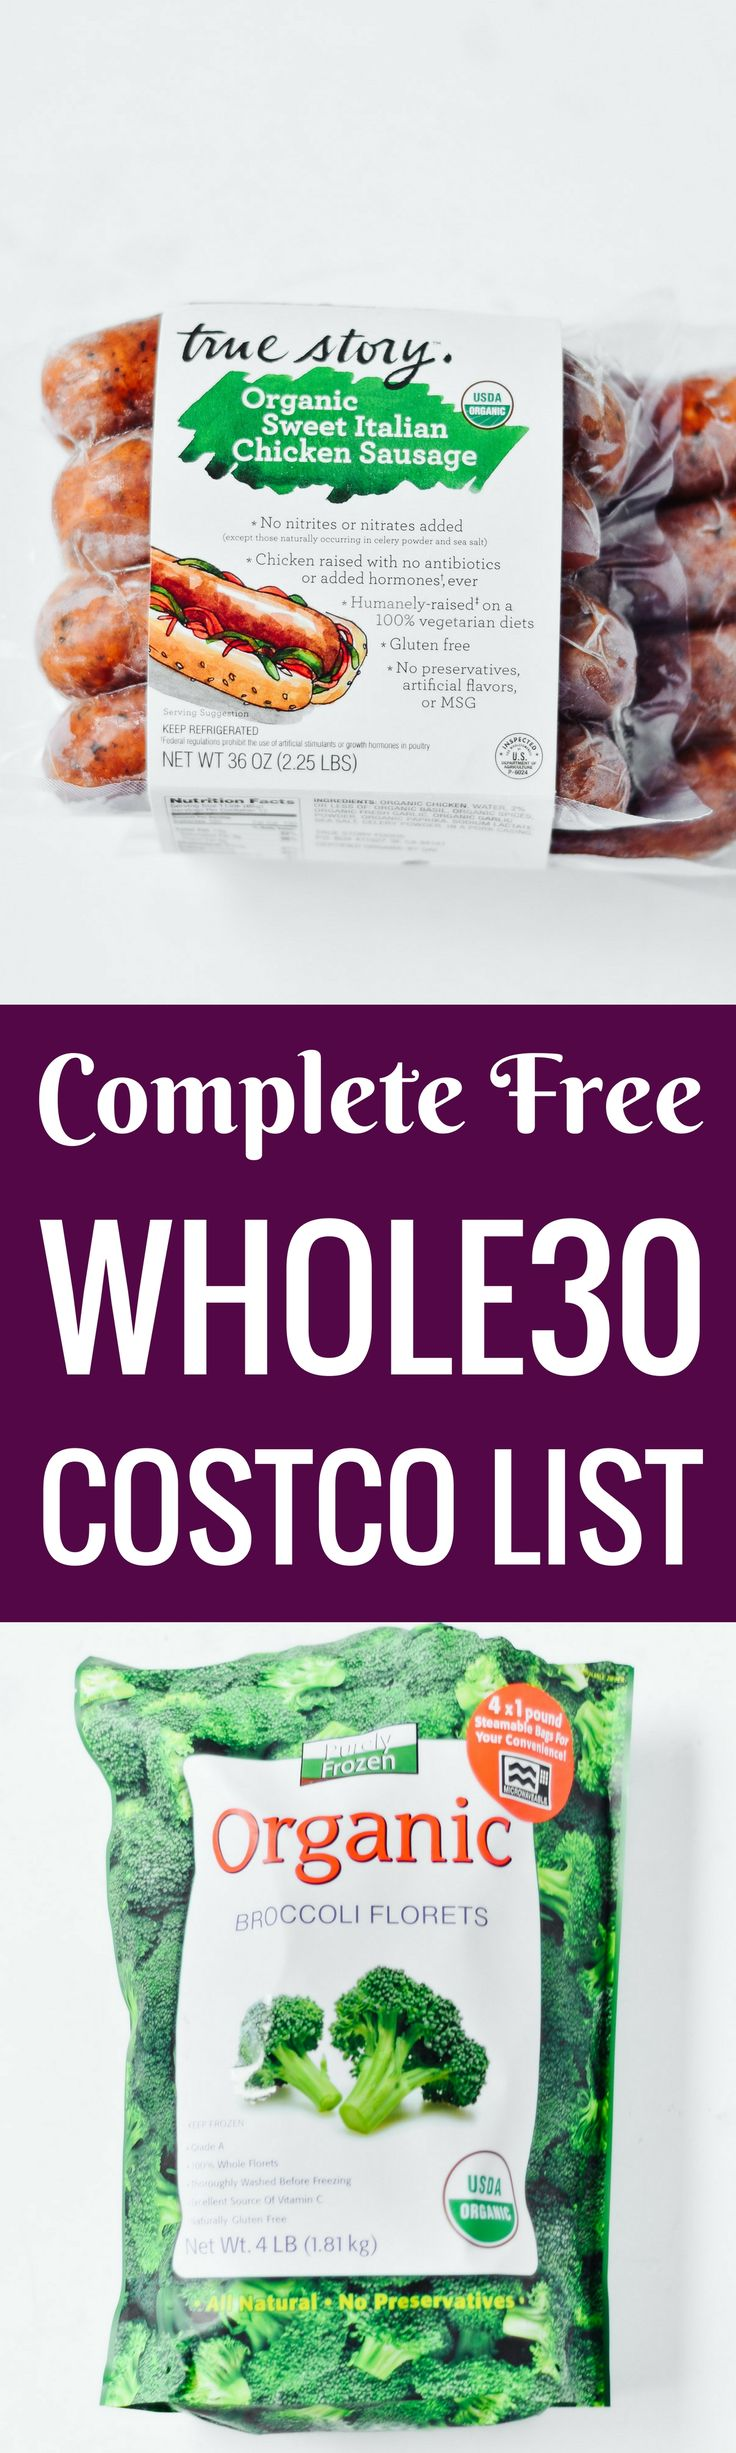 Whole30 shopping list just for you. Complete with how to read the labels guide and checkboxes for all your whole30 needs! Shop with ease! Eat like a whole30 king! Free shopping list & shopping guide printout! Whole30 shopping list. Whole30 Costco shopping